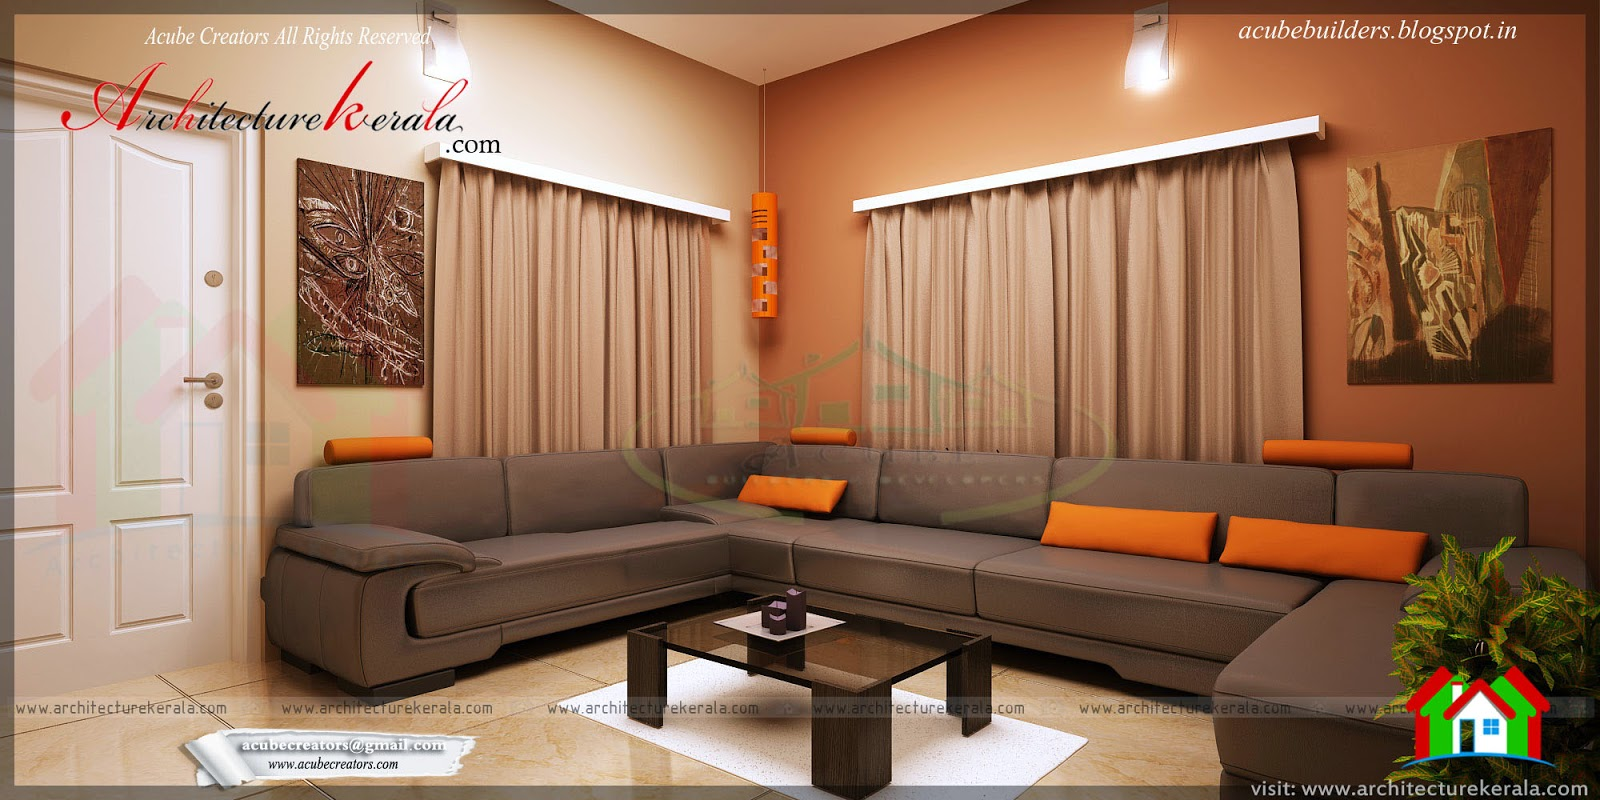 Drawing room interior design architecture kerala for Kerala house interior arch design